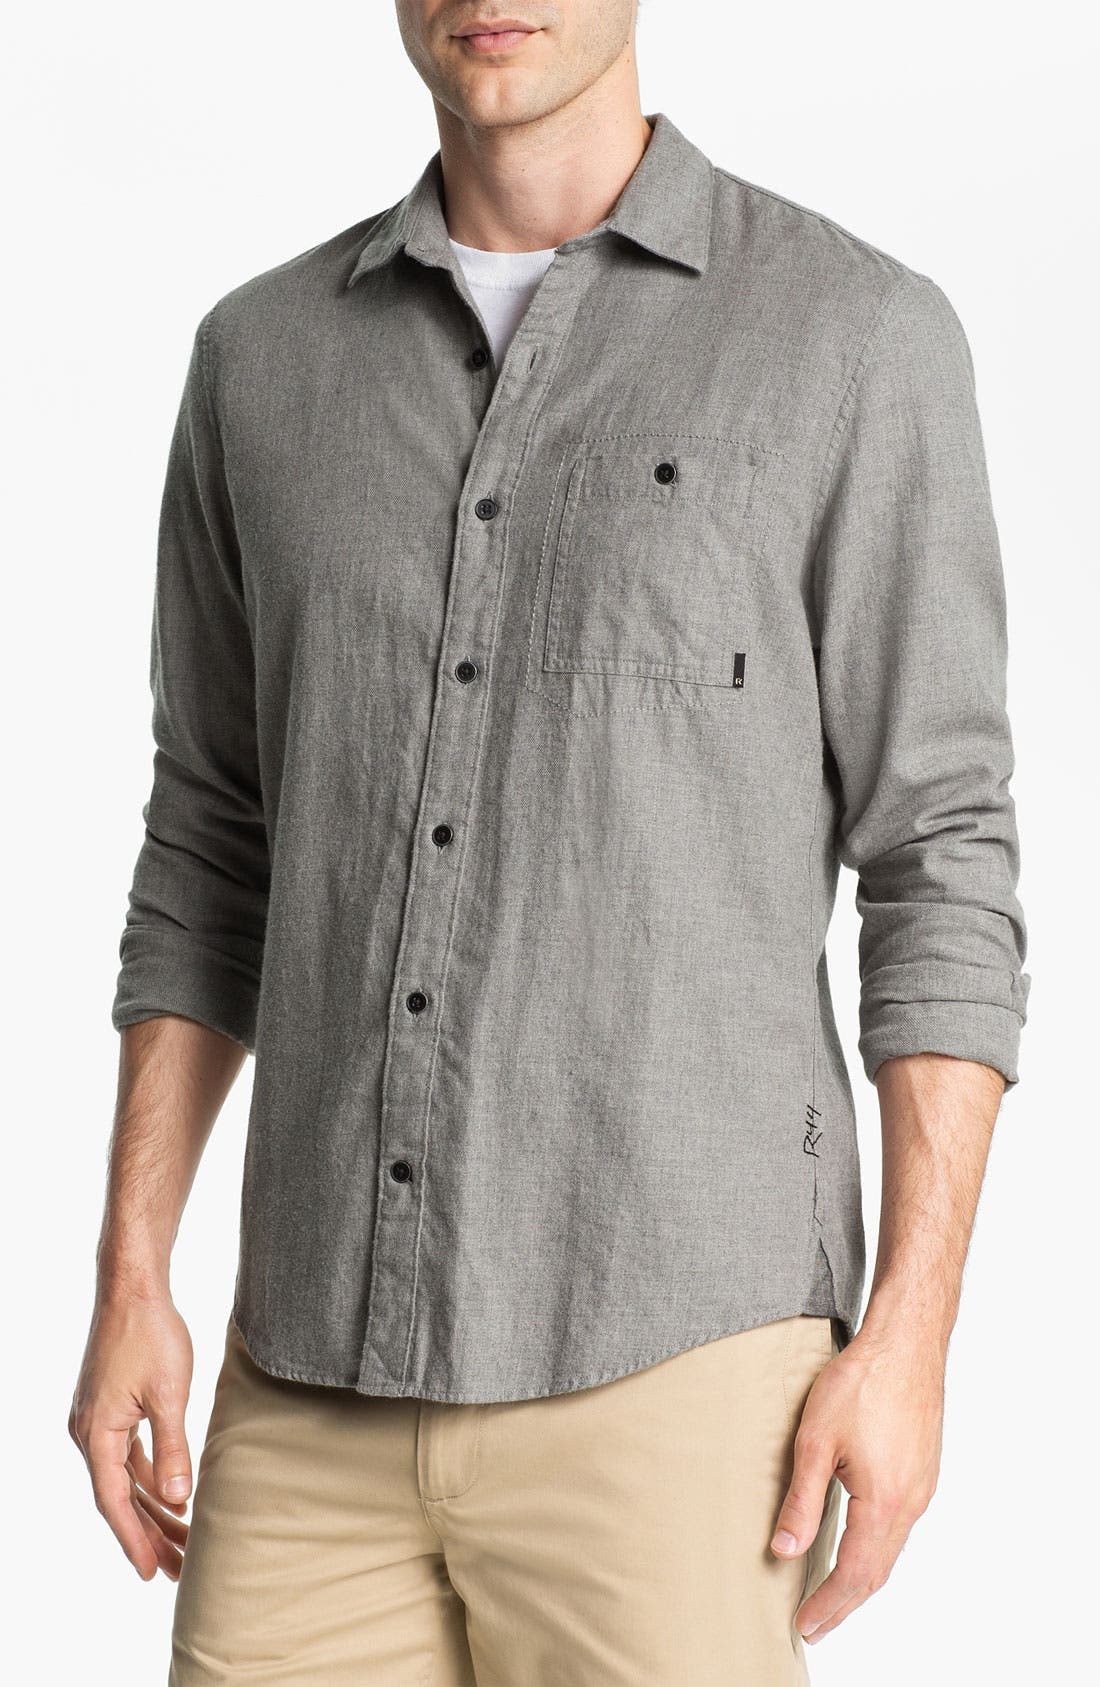 Alternate Image 1 Selected - R44 Rogan Standard Issue Grid Woven Shirt